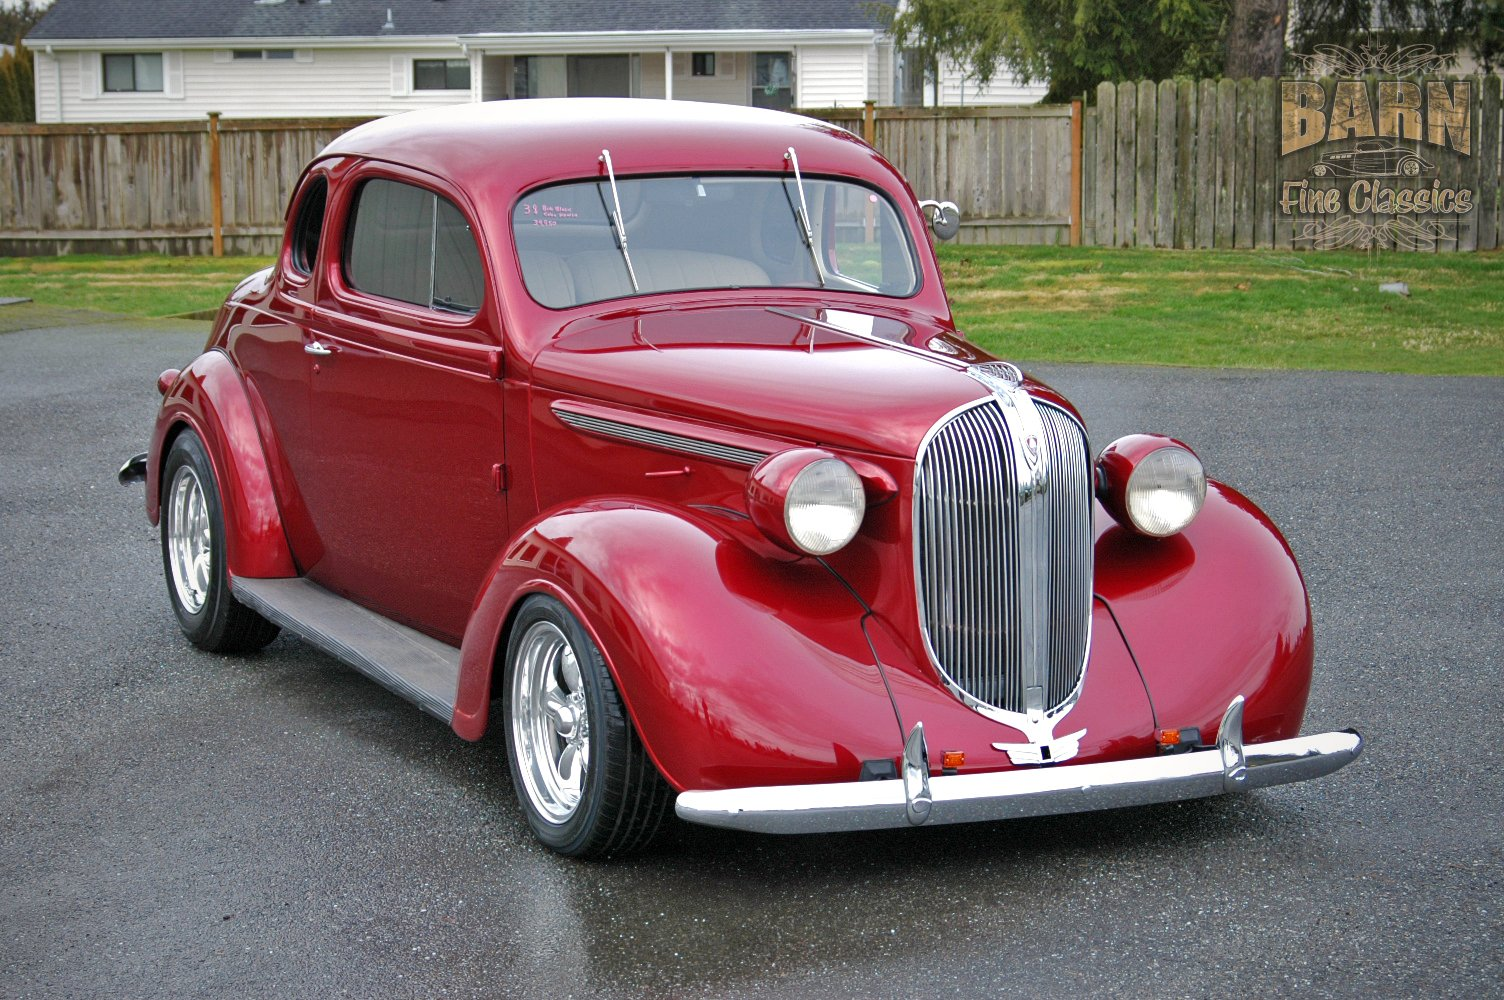 1938 Plymouth Coupe 2 Door Hotrod Streetrod Hot Rod Street